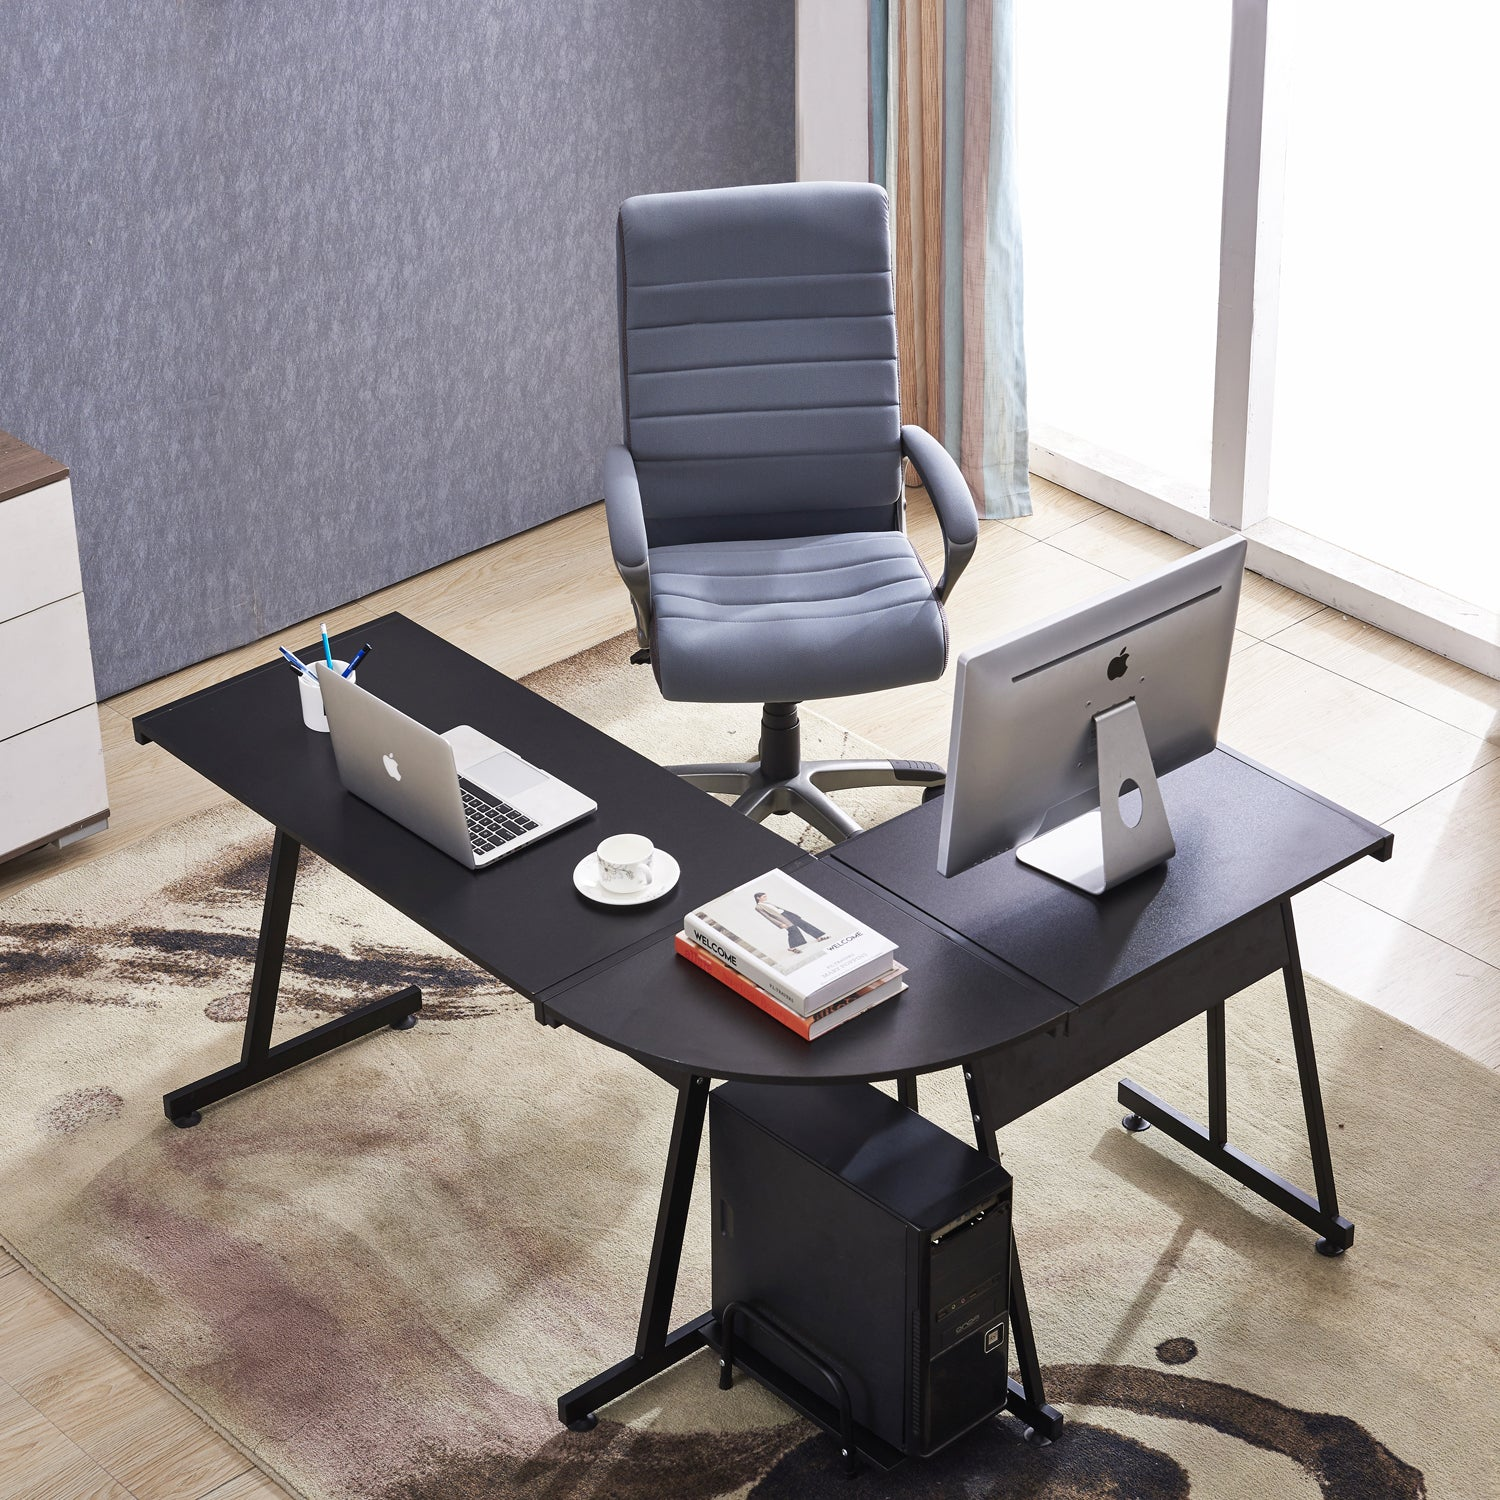 Office Desk Corner L Shaped Workstation Laptop Table With Keyboard Tray And  CPU Stand,MFB Black/Brown 6090 7112BK 6090 7122BK